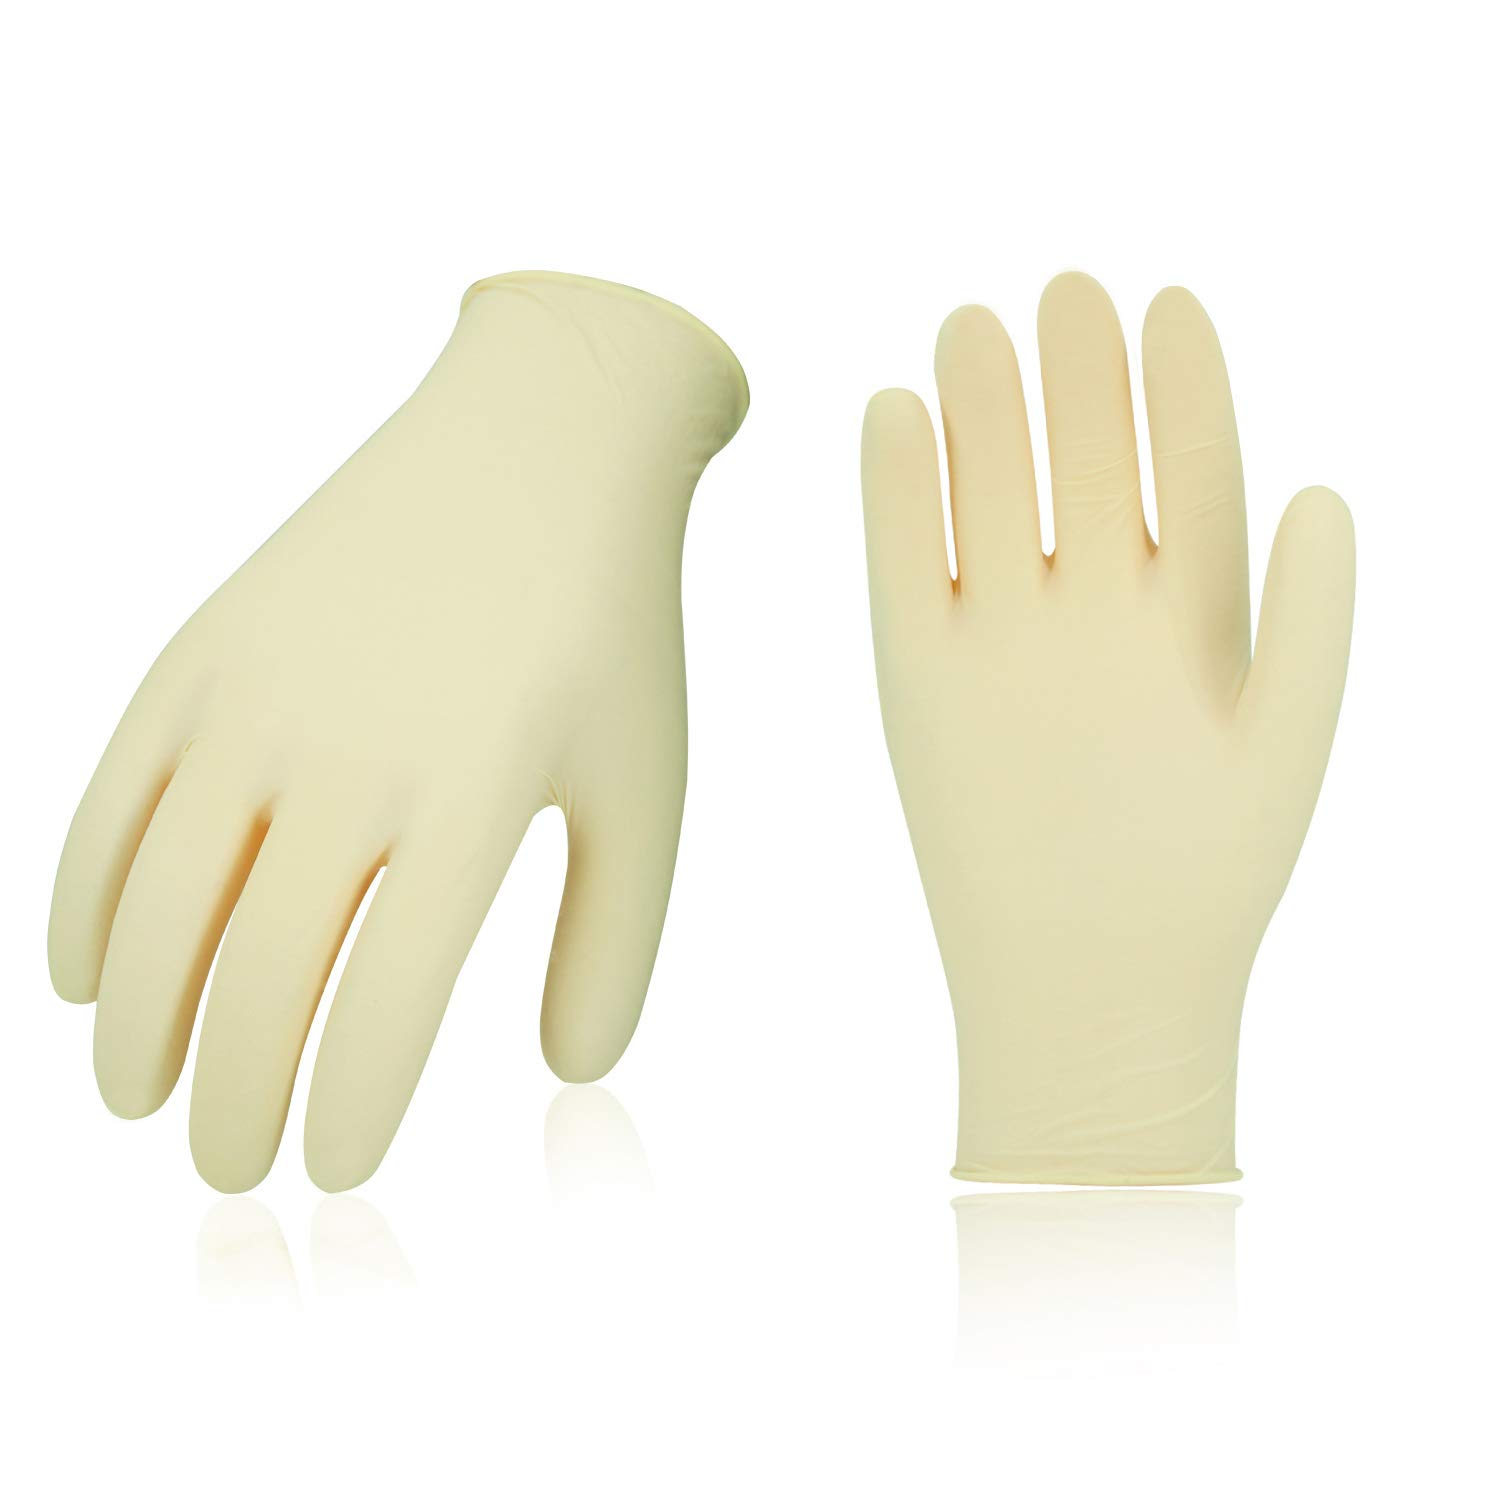 Vgo 100PCS Disposable Latex Powder-Free General Purpose, Foodservice Glove (Size L,White,RB5138) Laborsing Safety Products Inc.